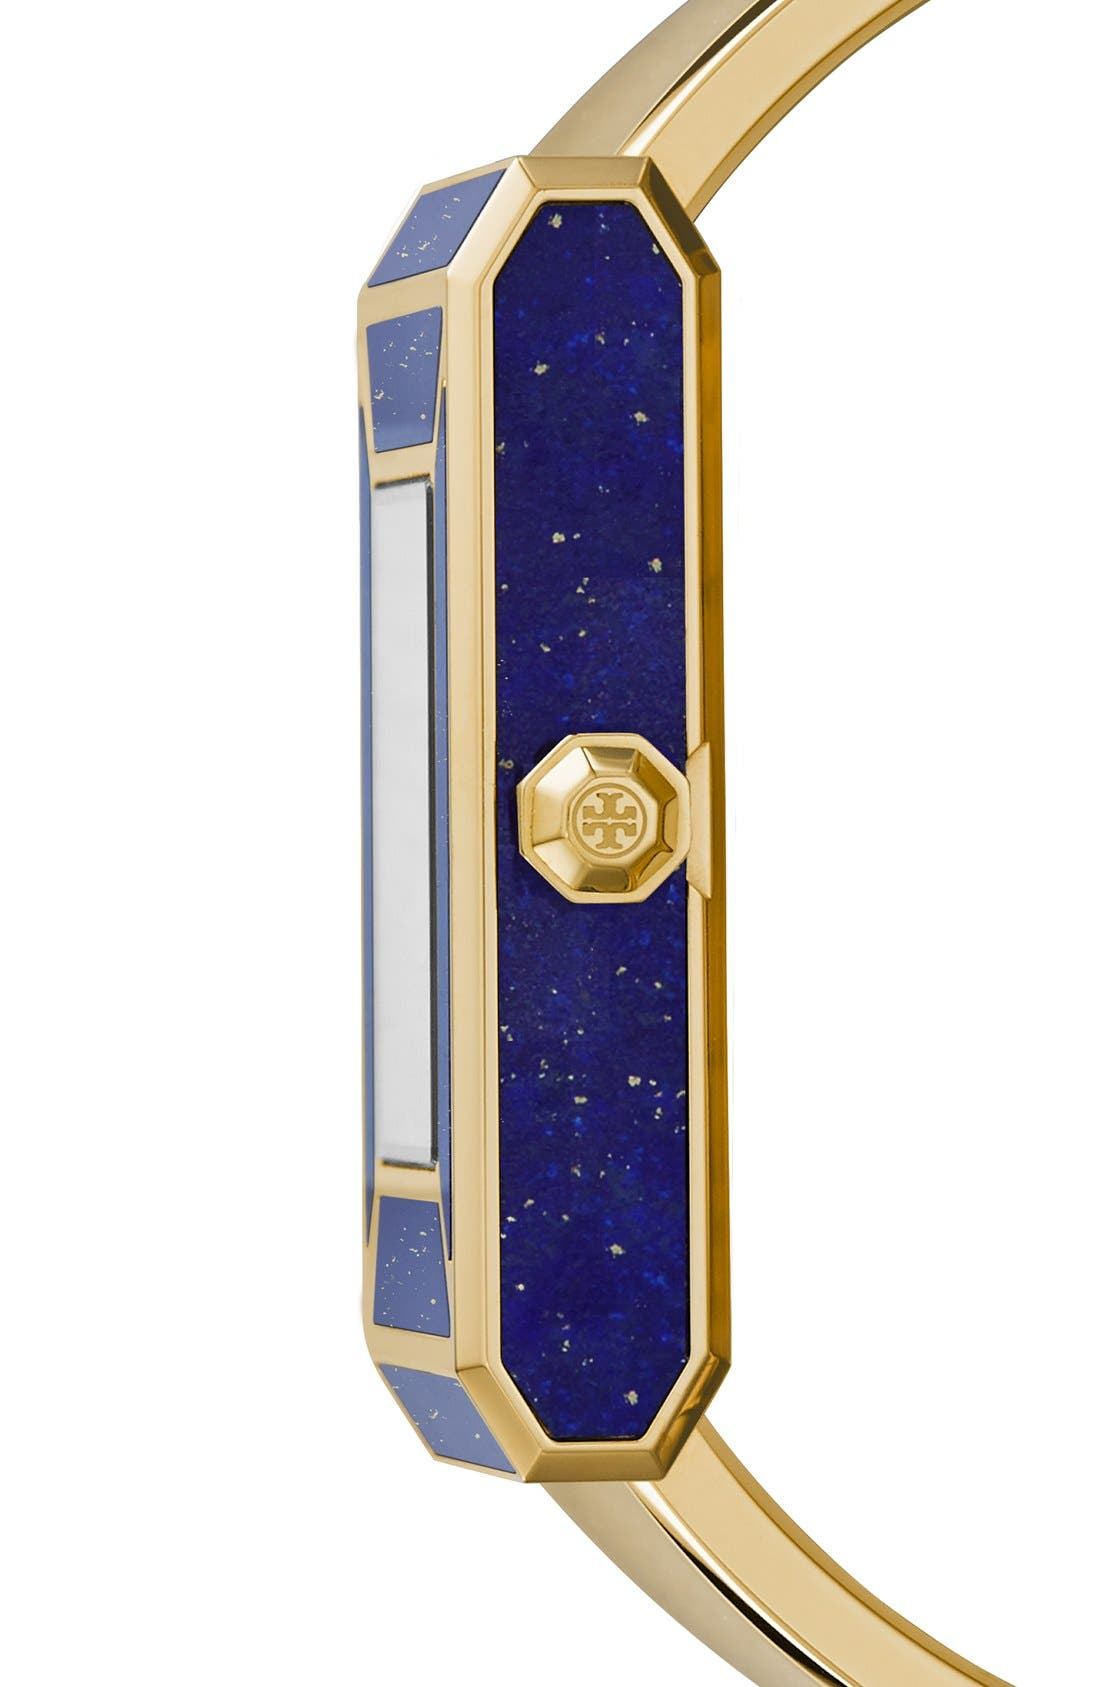 TORY BURCH,                             'Robinson' Rectangle Case Bangle Watch, 25mm x 38mm,                             Alternate thumbnail 6, color,                             710